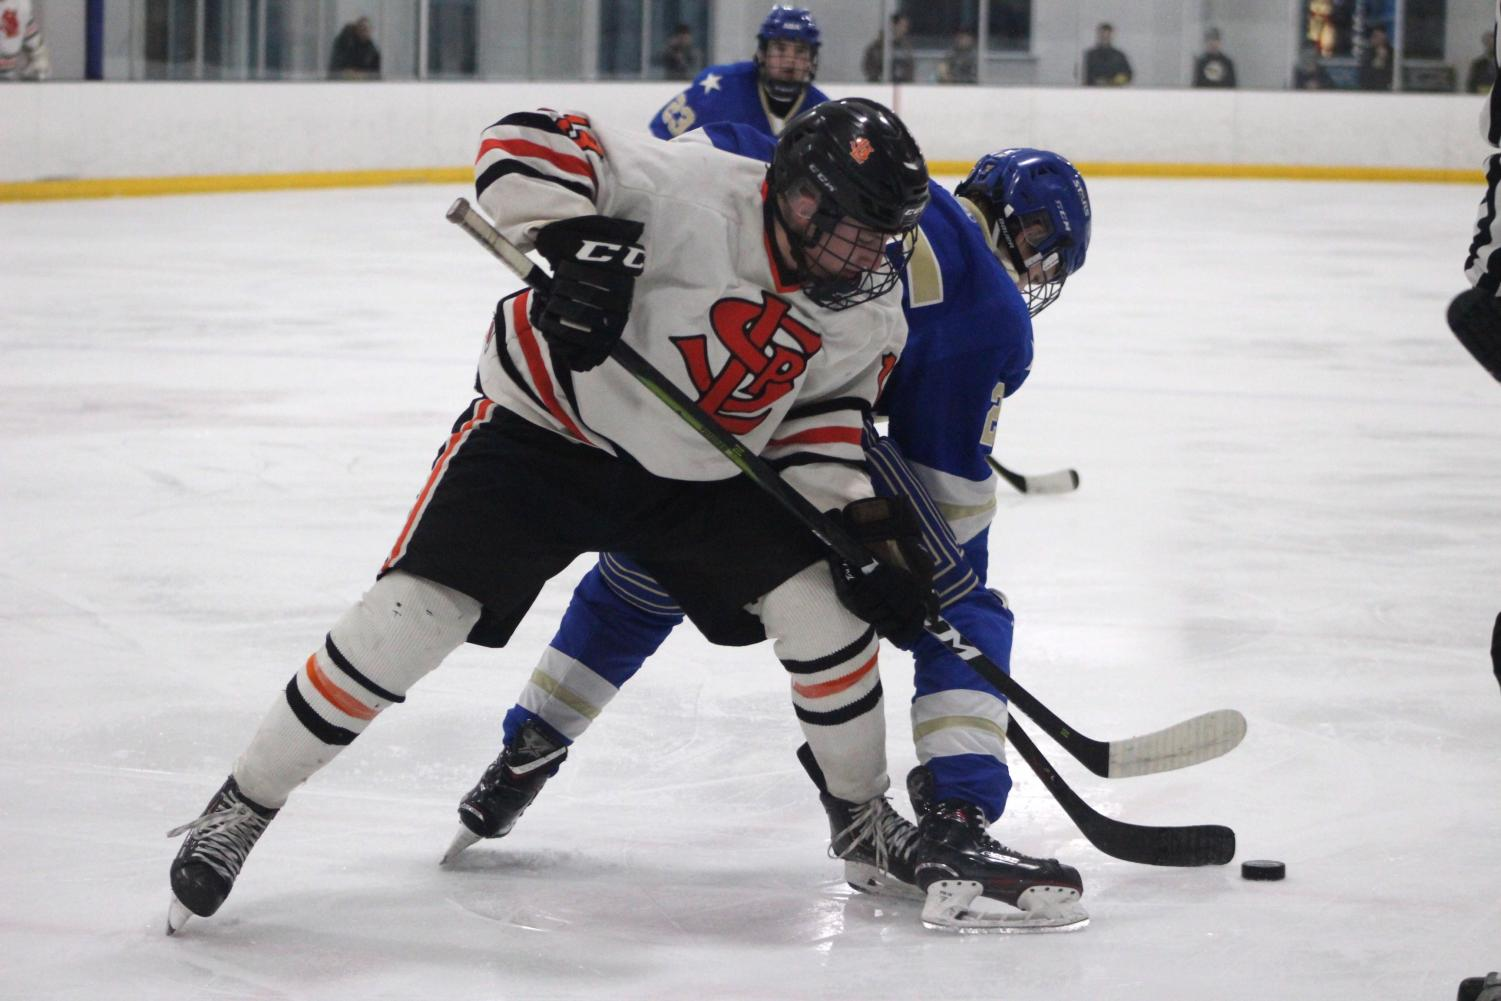 Sophmore Jack Wandmacher challenges Holy Angels player for the puck. The Park boys' hockey team played against Academy of Holy Angels 7 p.m. Jan. 15 at the Rec Center.